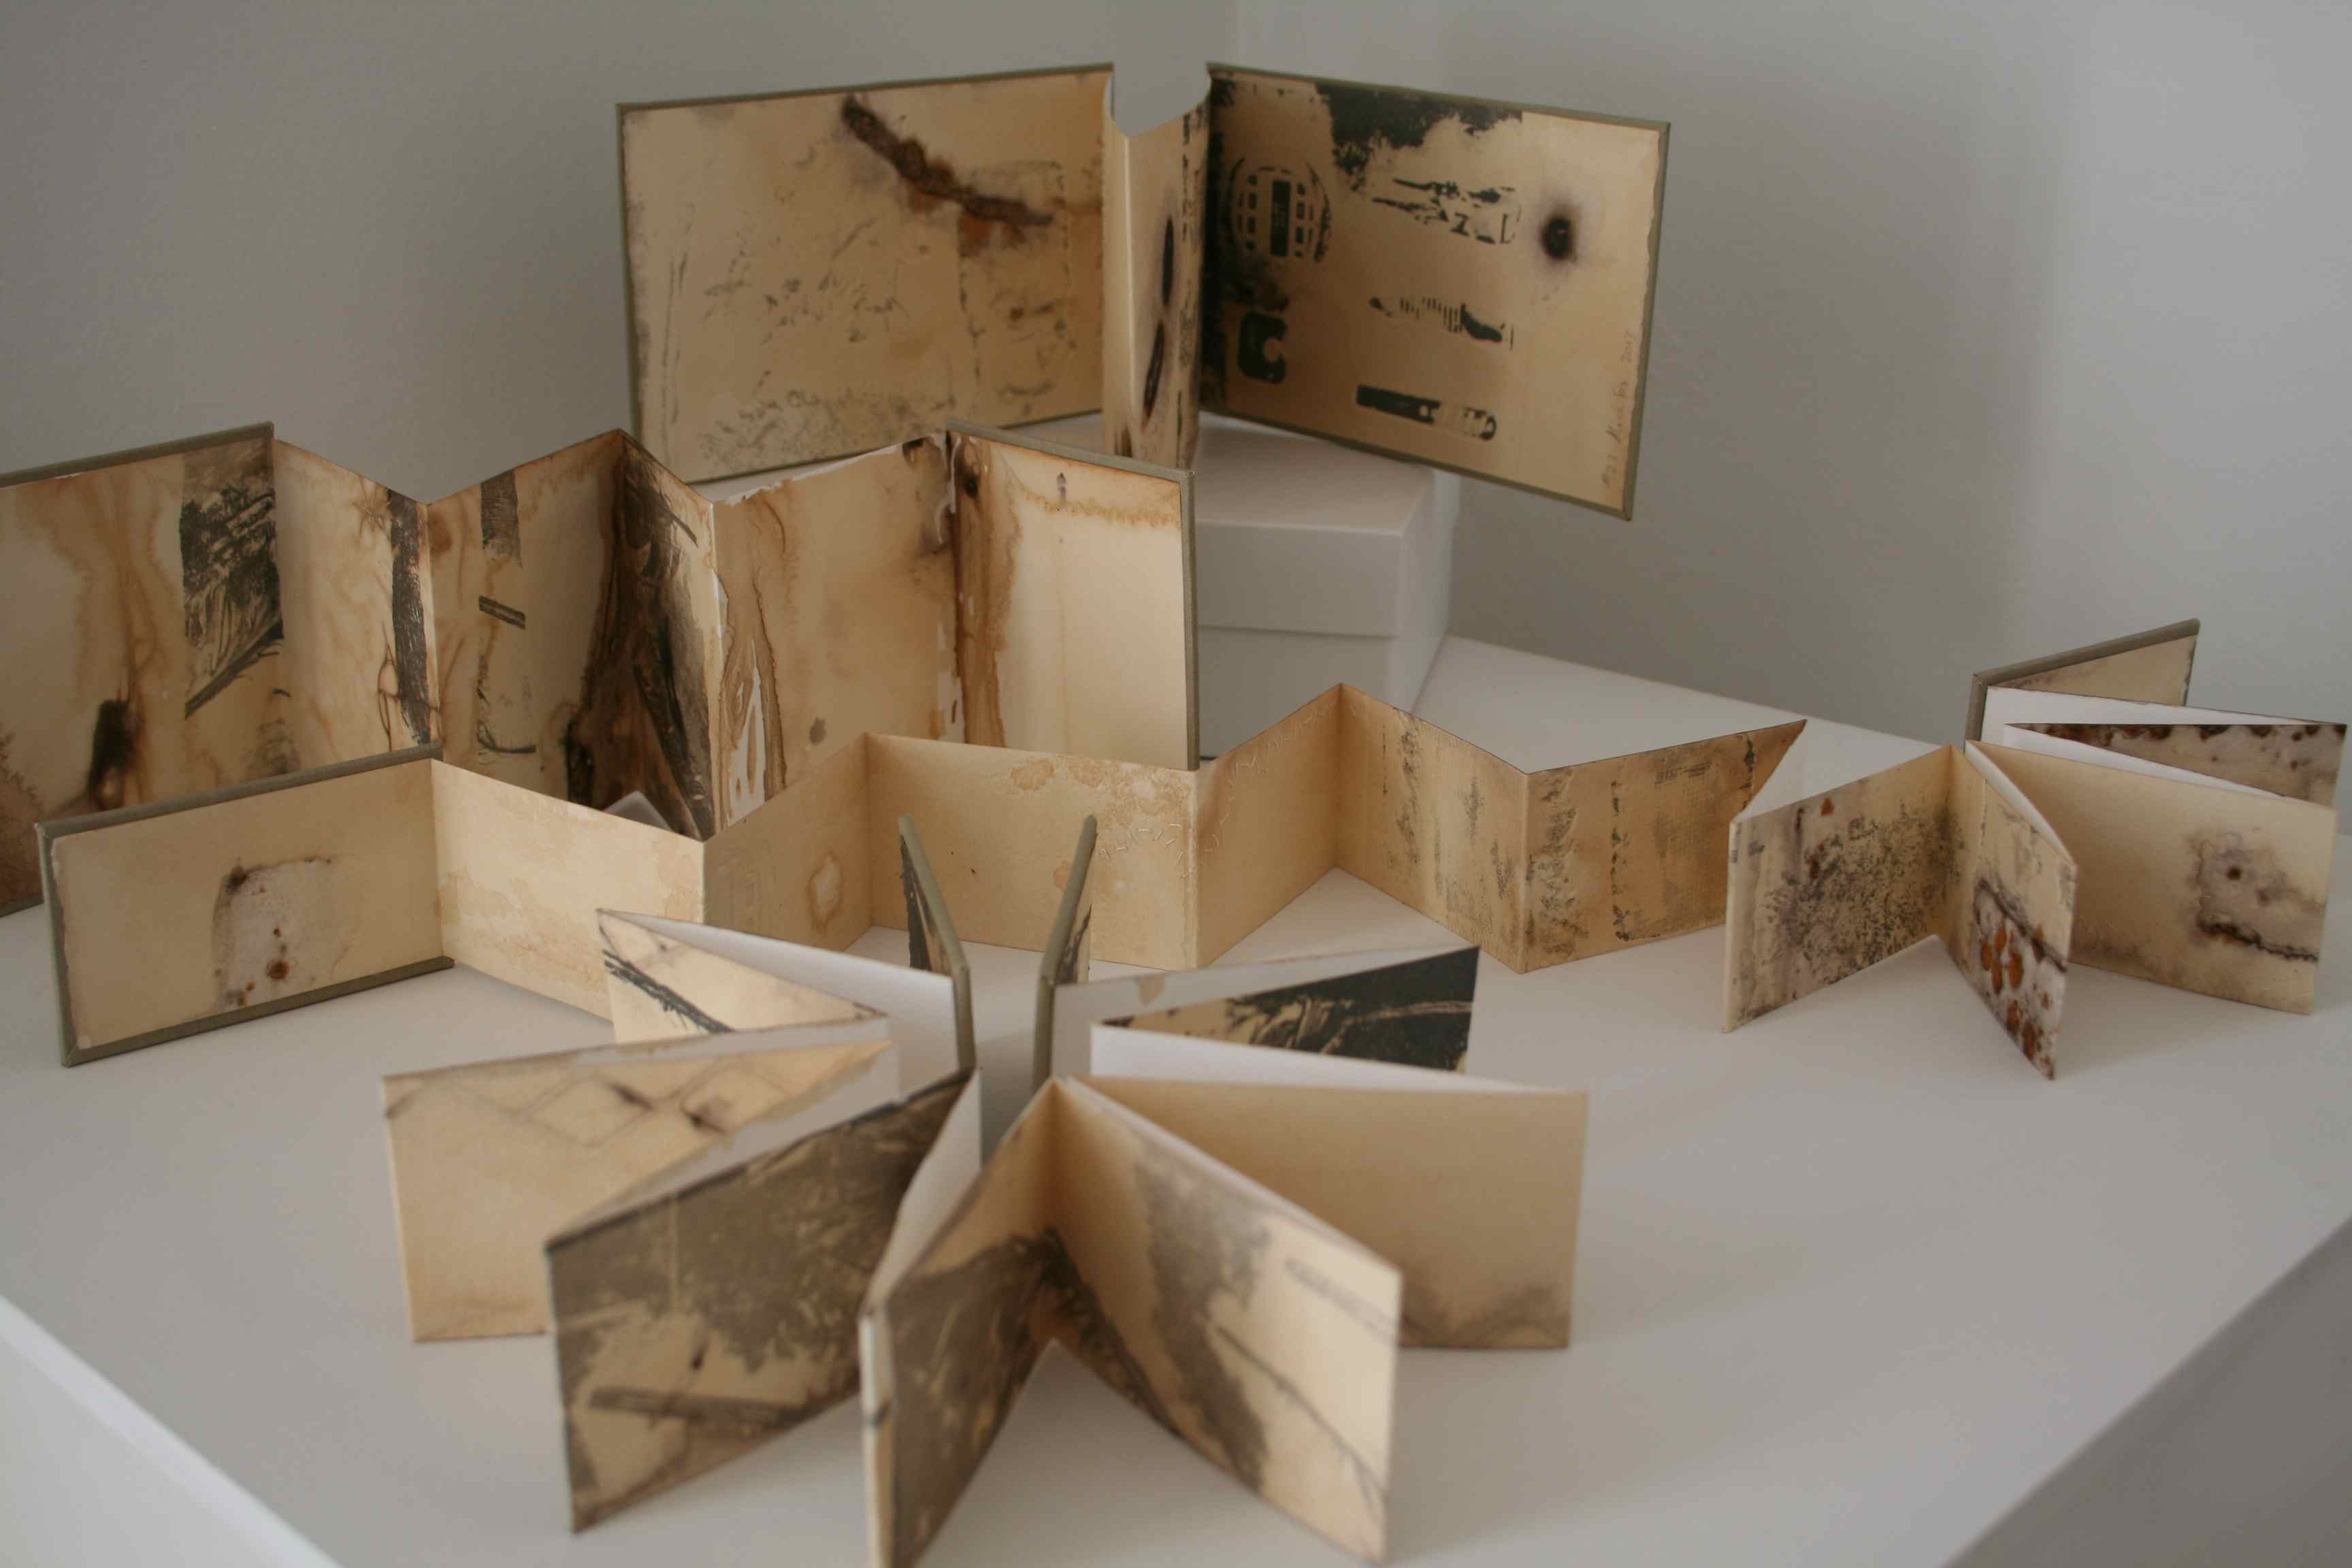 Alice Fox Tide Marks books at Gallery 49